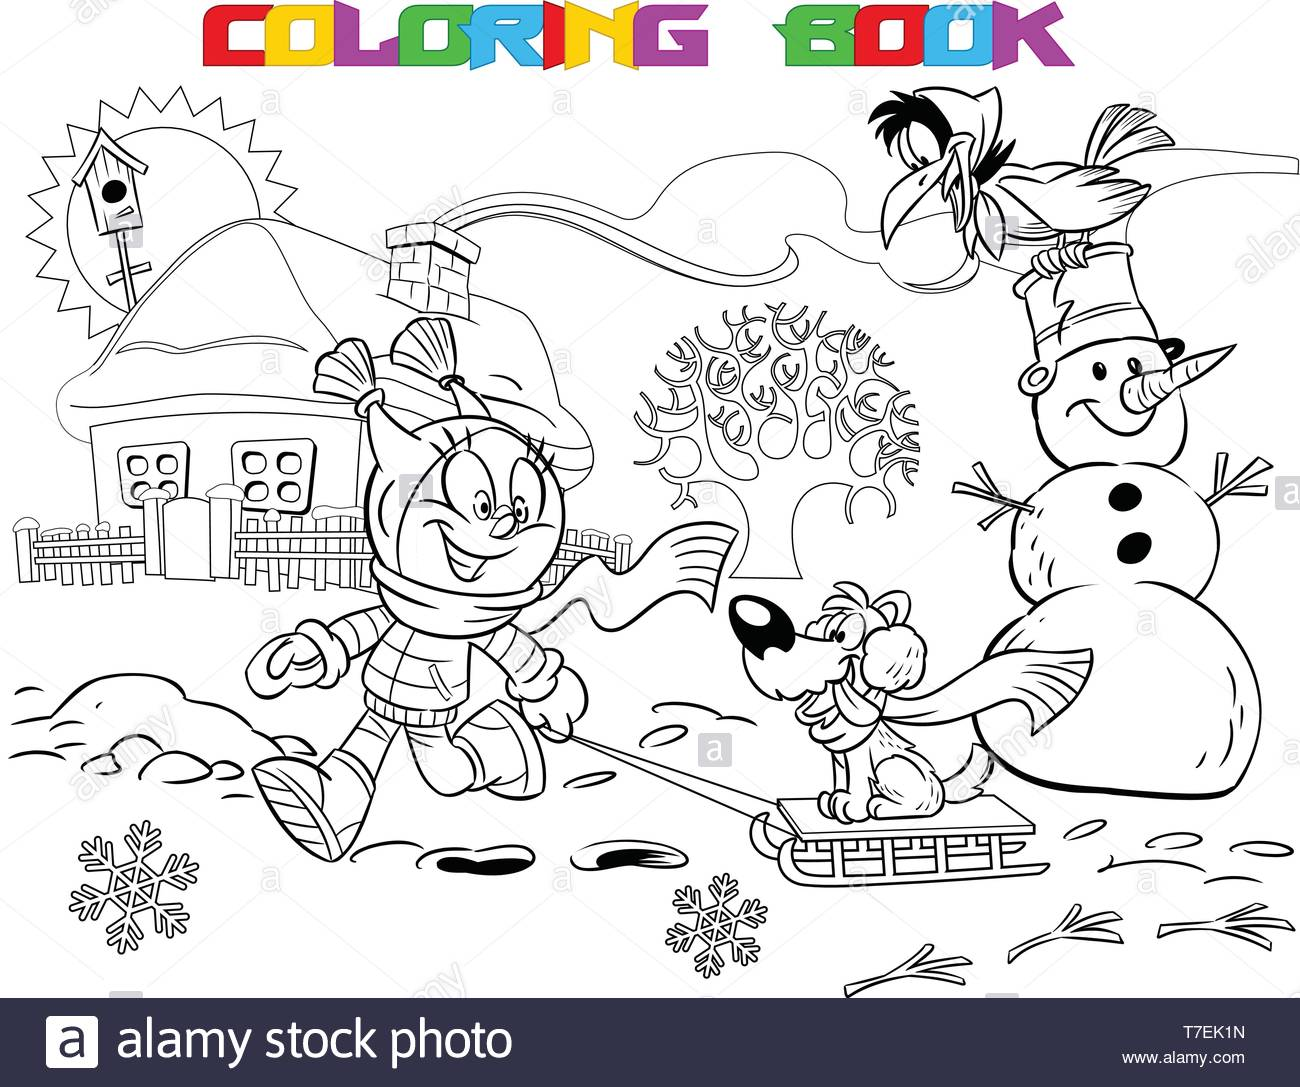 Little girl on a fun walk near the house. This winter, a lot of snow. A child plays with a puppy.  Is made a black outline for a coloring book. - Stock Image